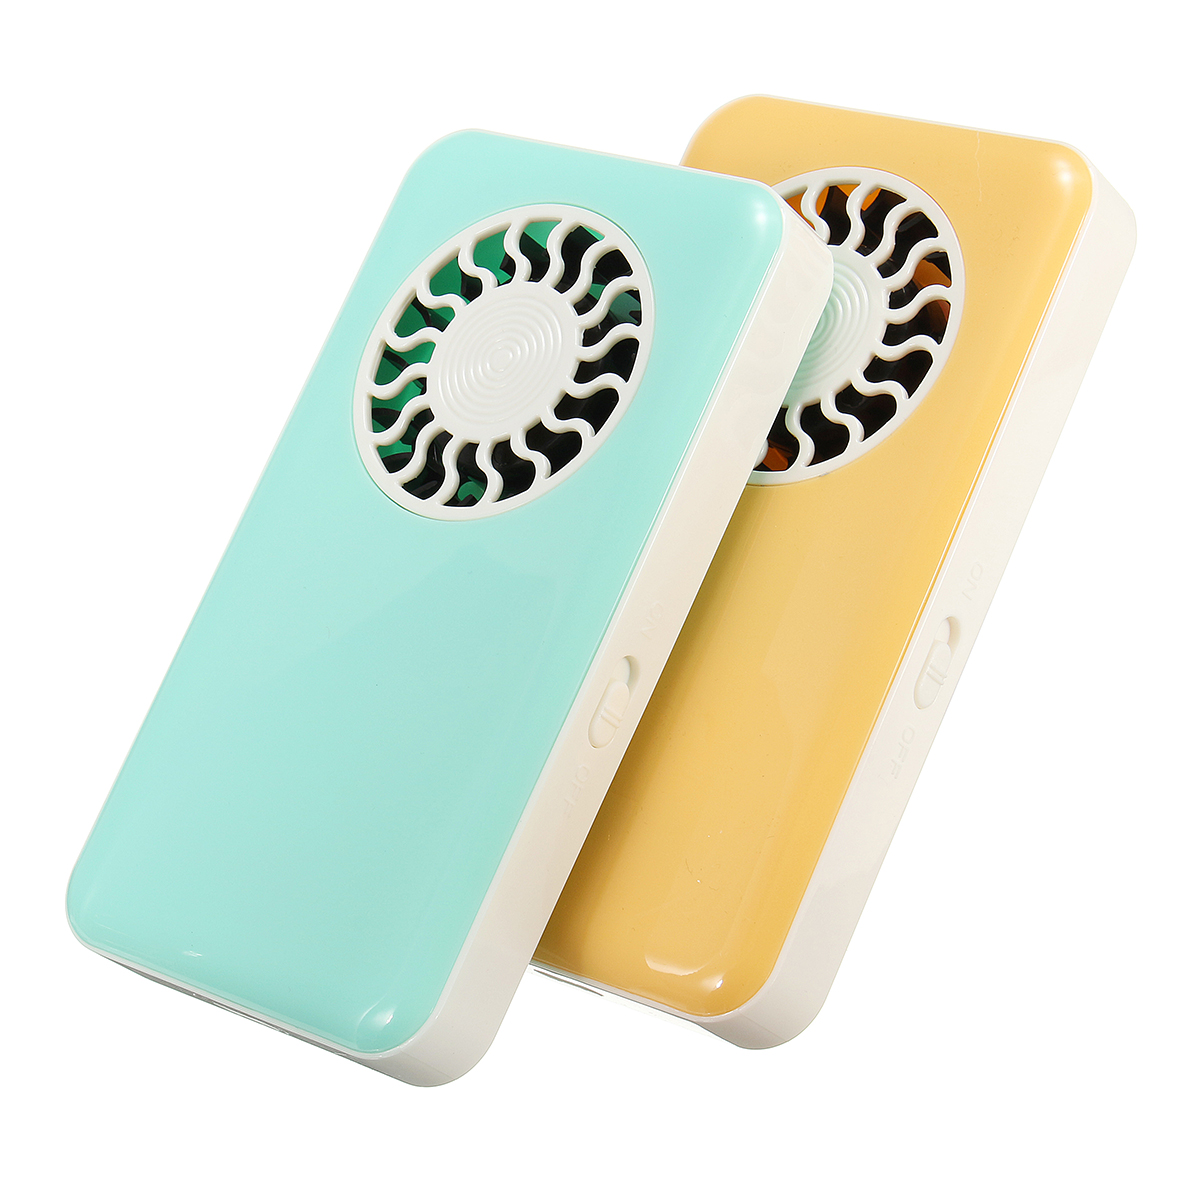 Mini Portable Handheld Rechargeable Summer Cooler Outdoor USB Fan